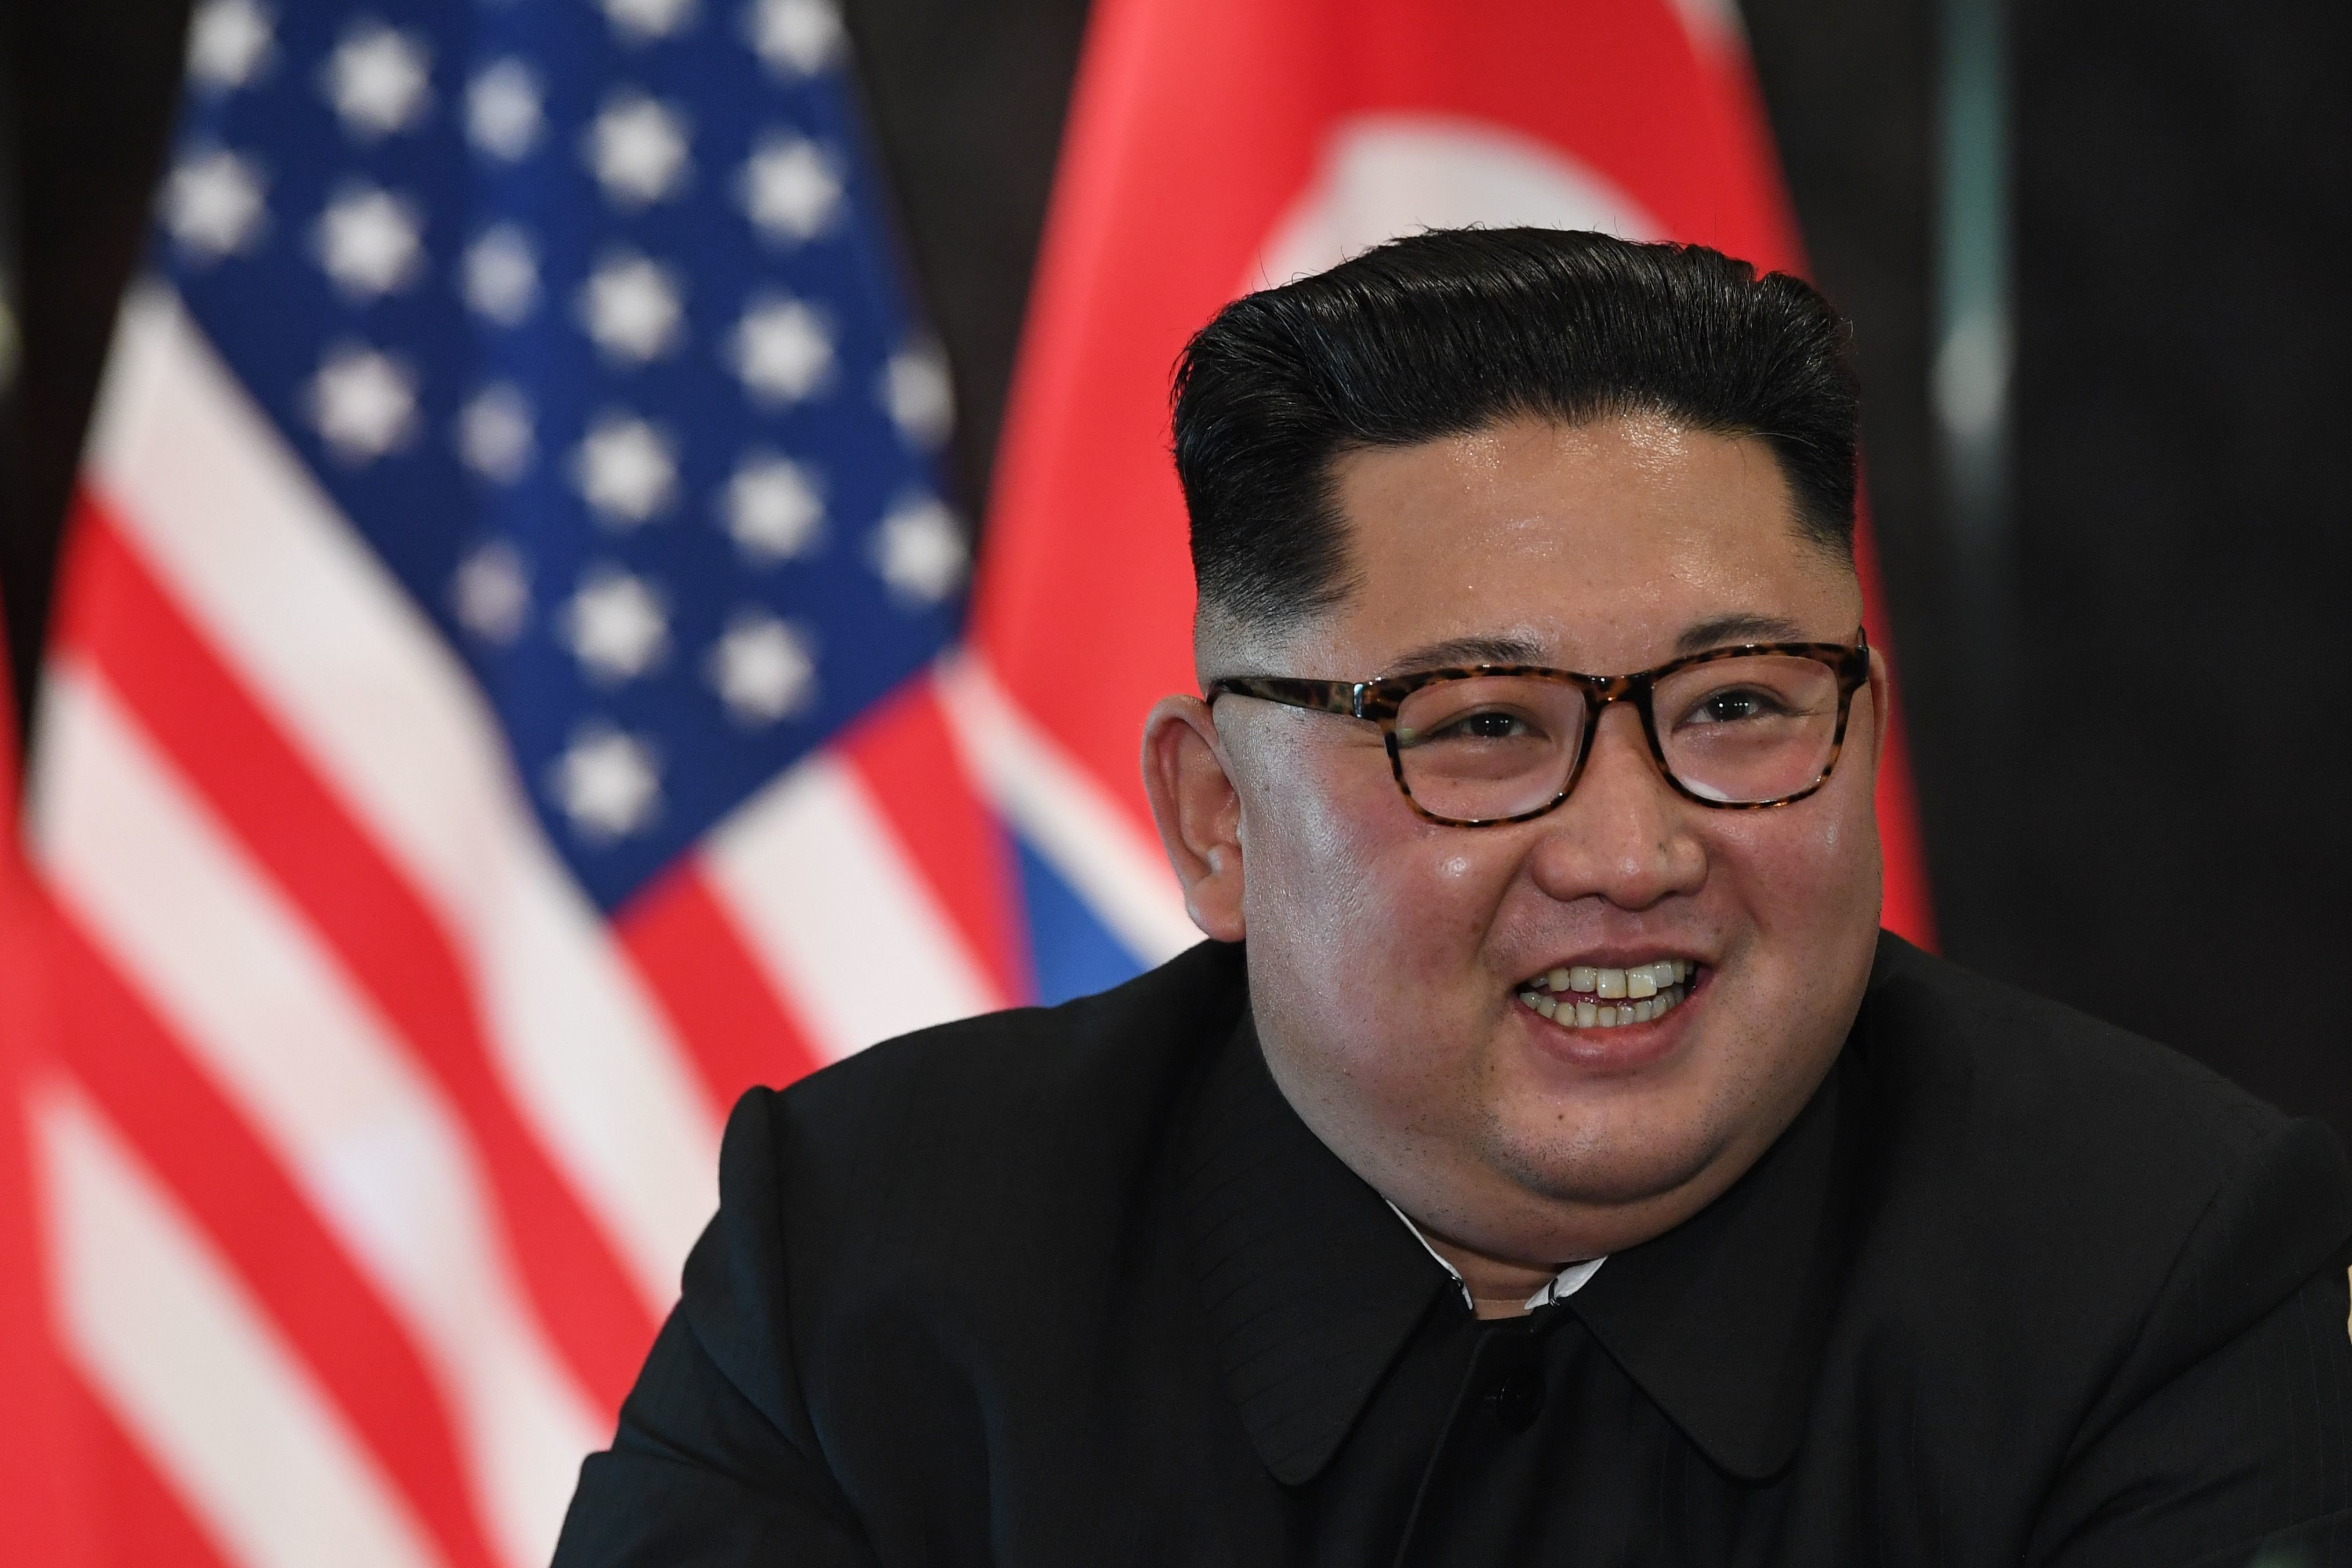 North Korea's leader Kim Jong Un reacts at a signing ceremony with US President Donald Trump (not pictured) during their historic US-North Korea summit, at the Capella Hotel on Sentosa island in Singapore on June 12, 2018. - Donald Trump and Kim Jong Un became on June 12 the first sitting US and North Korean leaders to meet, shake hands and negotiate to end a decades-old nuclear stand-off. (Photo by SAUL LOEB / AFP)        (Photo credit should read SAUL LOEB/AFP/Getty Images)